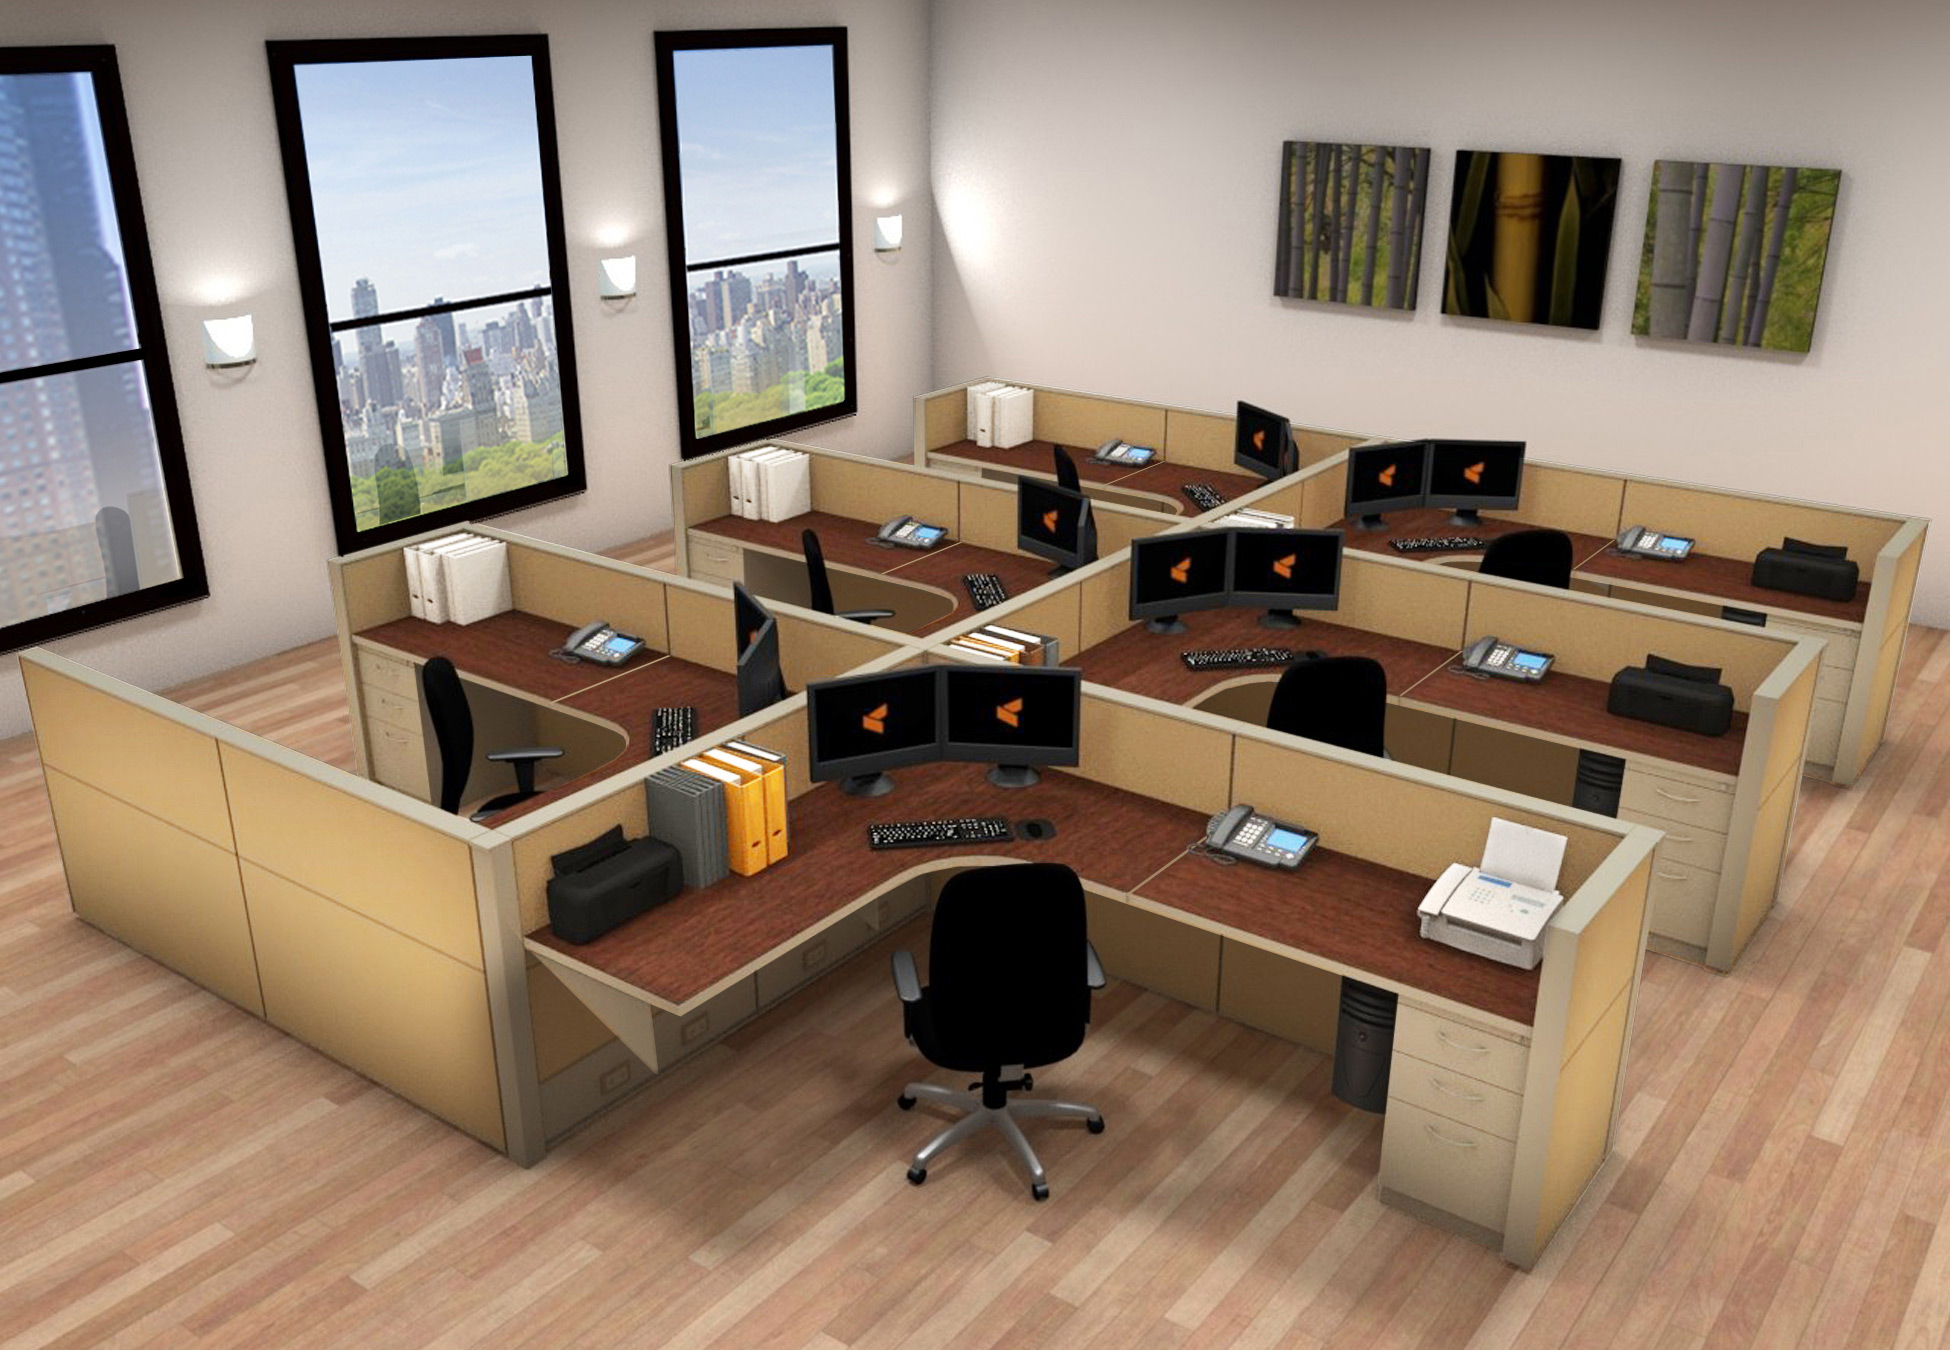 Booth Dining Room Sets Office Workstation Desk 6x8 Cubicle Workstations